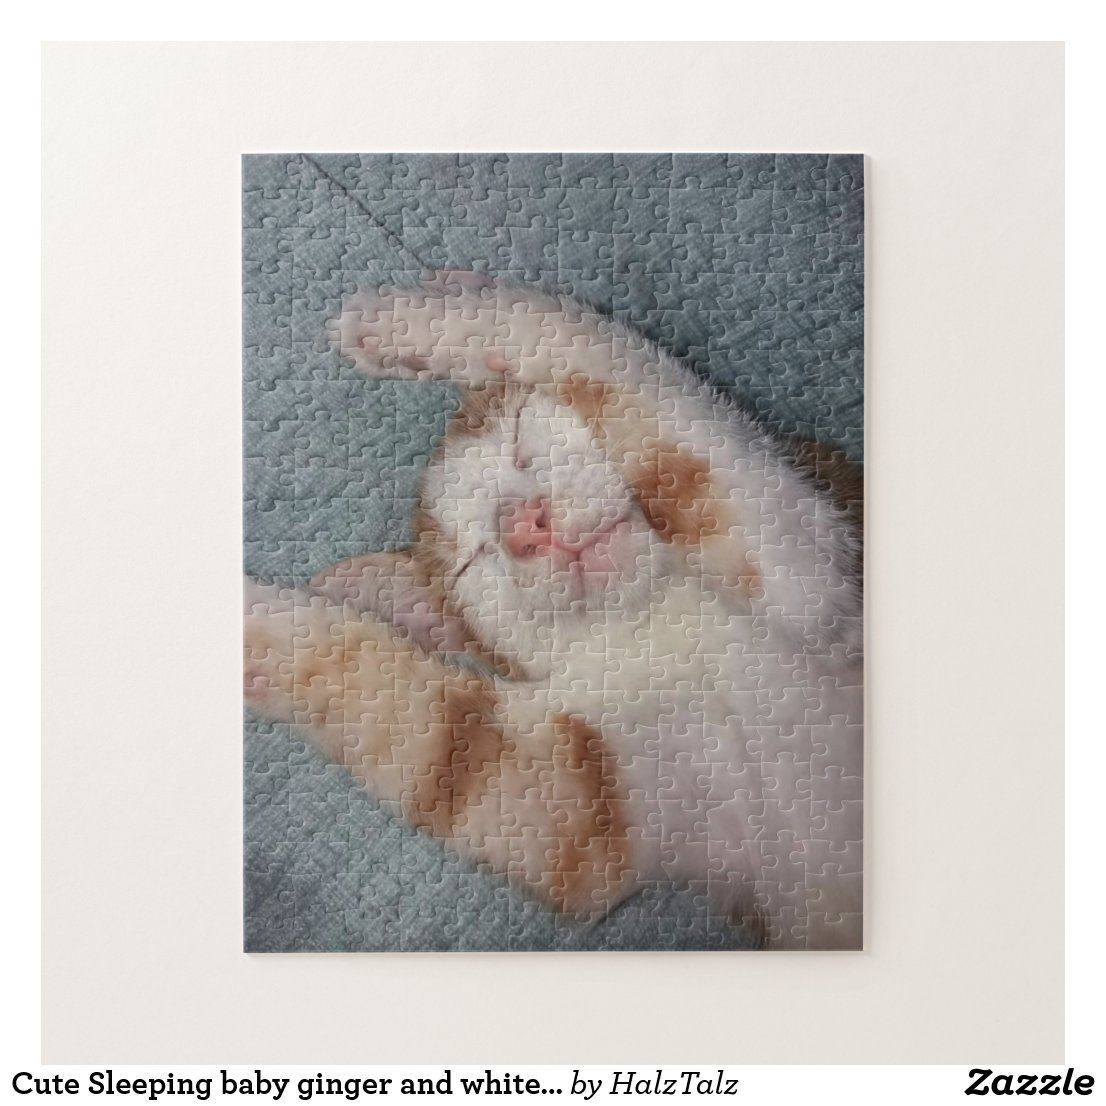 Cute Sleeping baby ginger and white tabby kitten Jigsaw Puzzle | Zazzle.com